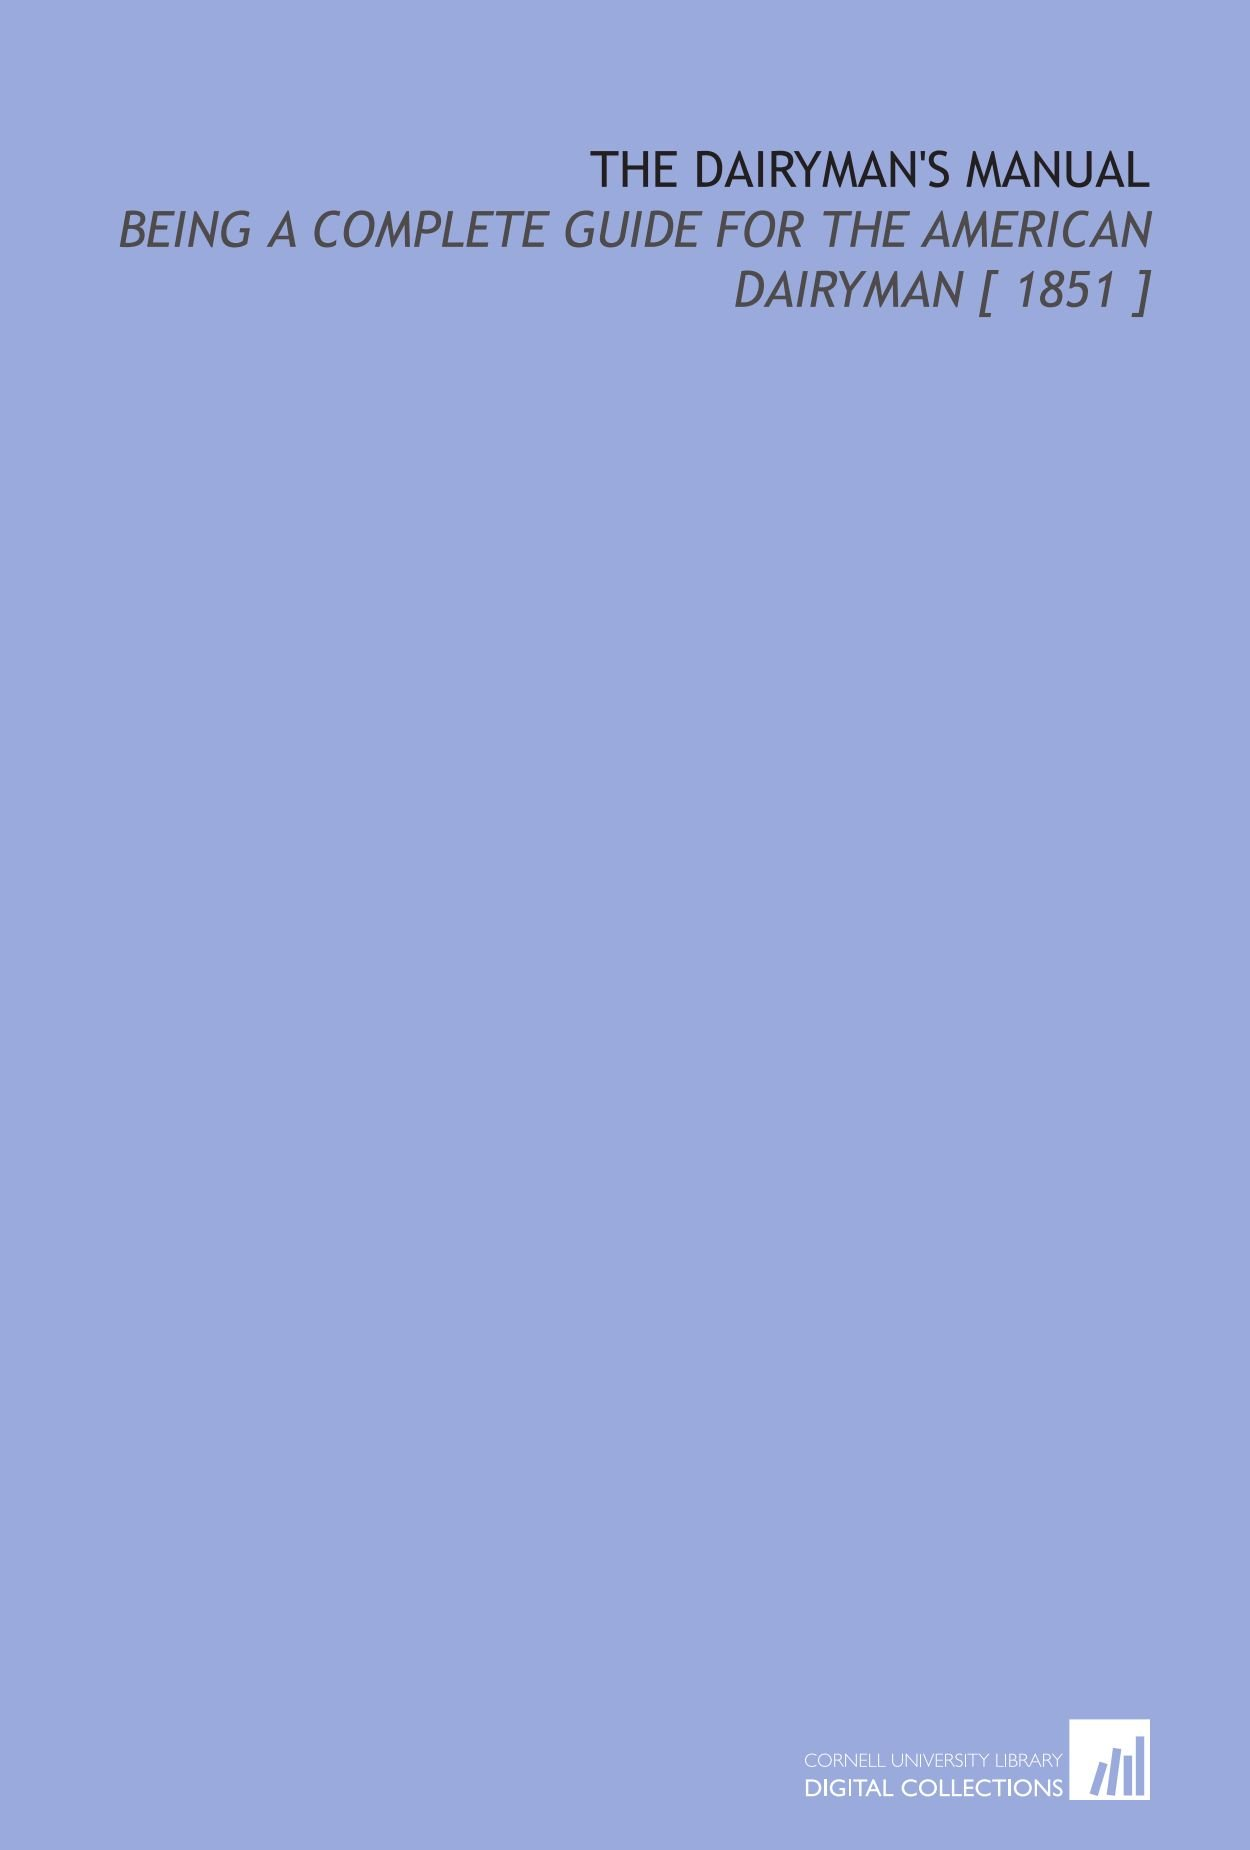 Download The Dairyman's Manual: Being a Complete Guide for the American Dairyman [ 1851 ] pdf epub